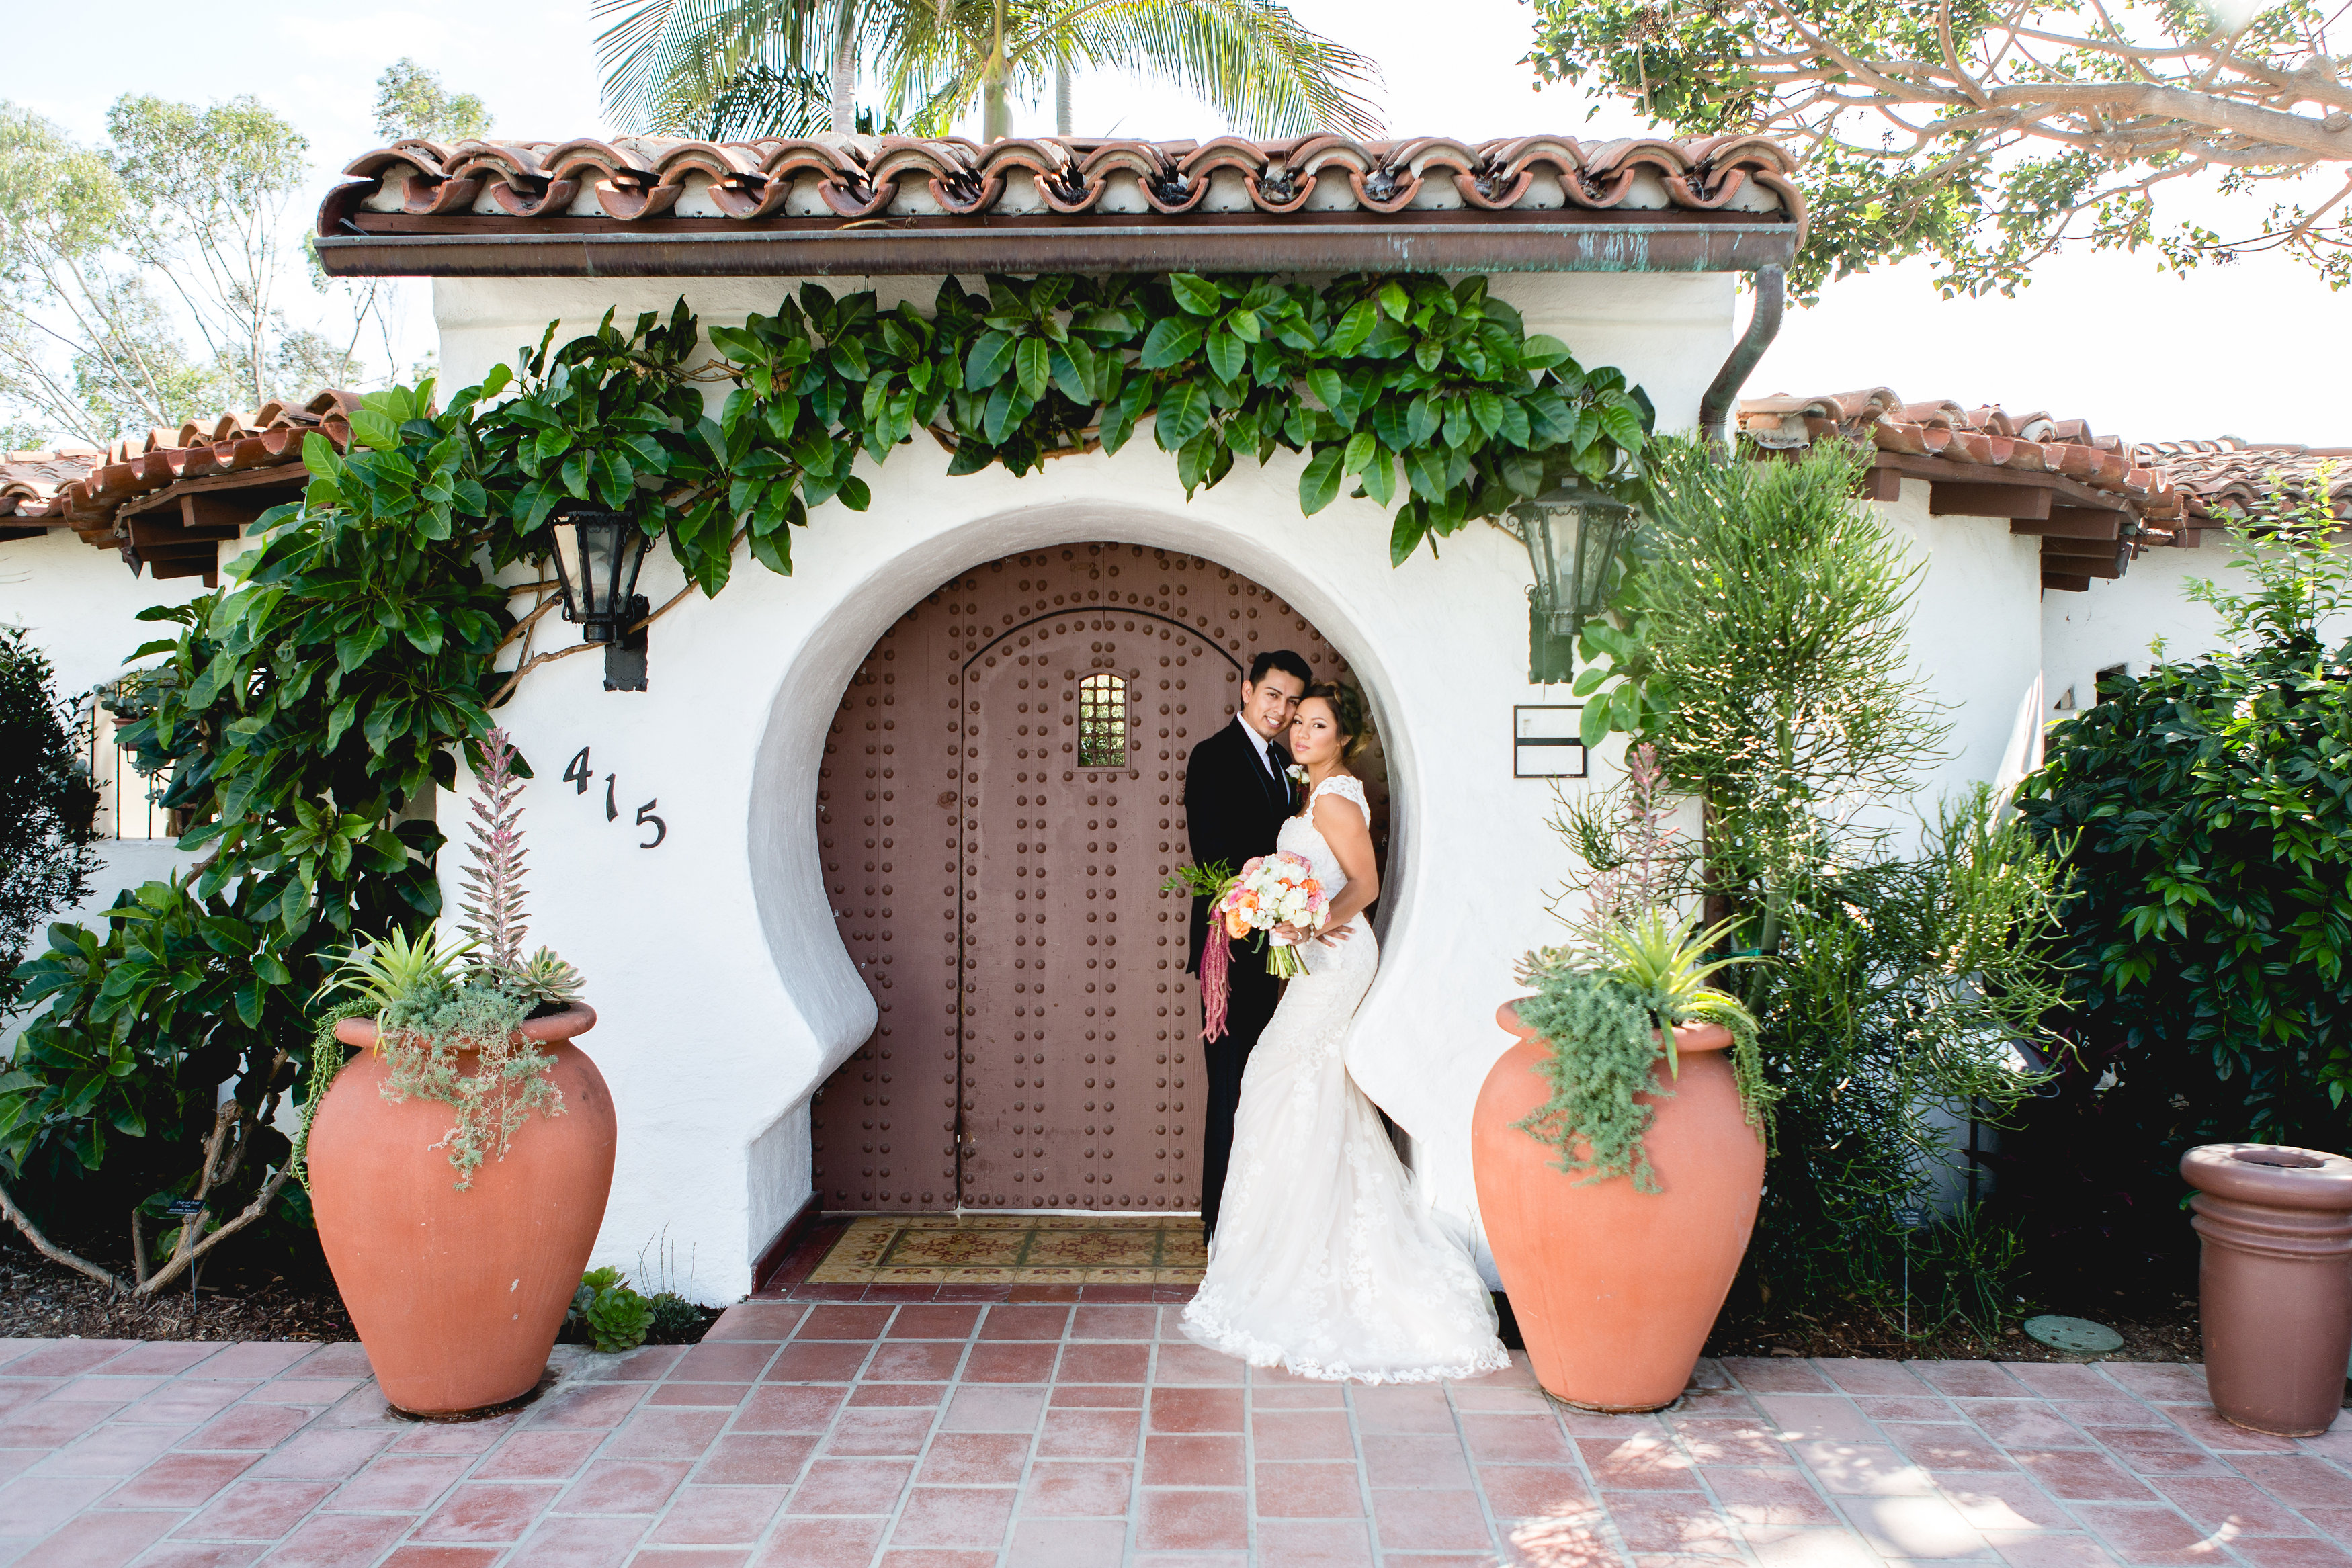 Casa Romantica San Clemente Events By Cori Wedding Styled Photo Shoot Orange  County Weddings Event Planning ...